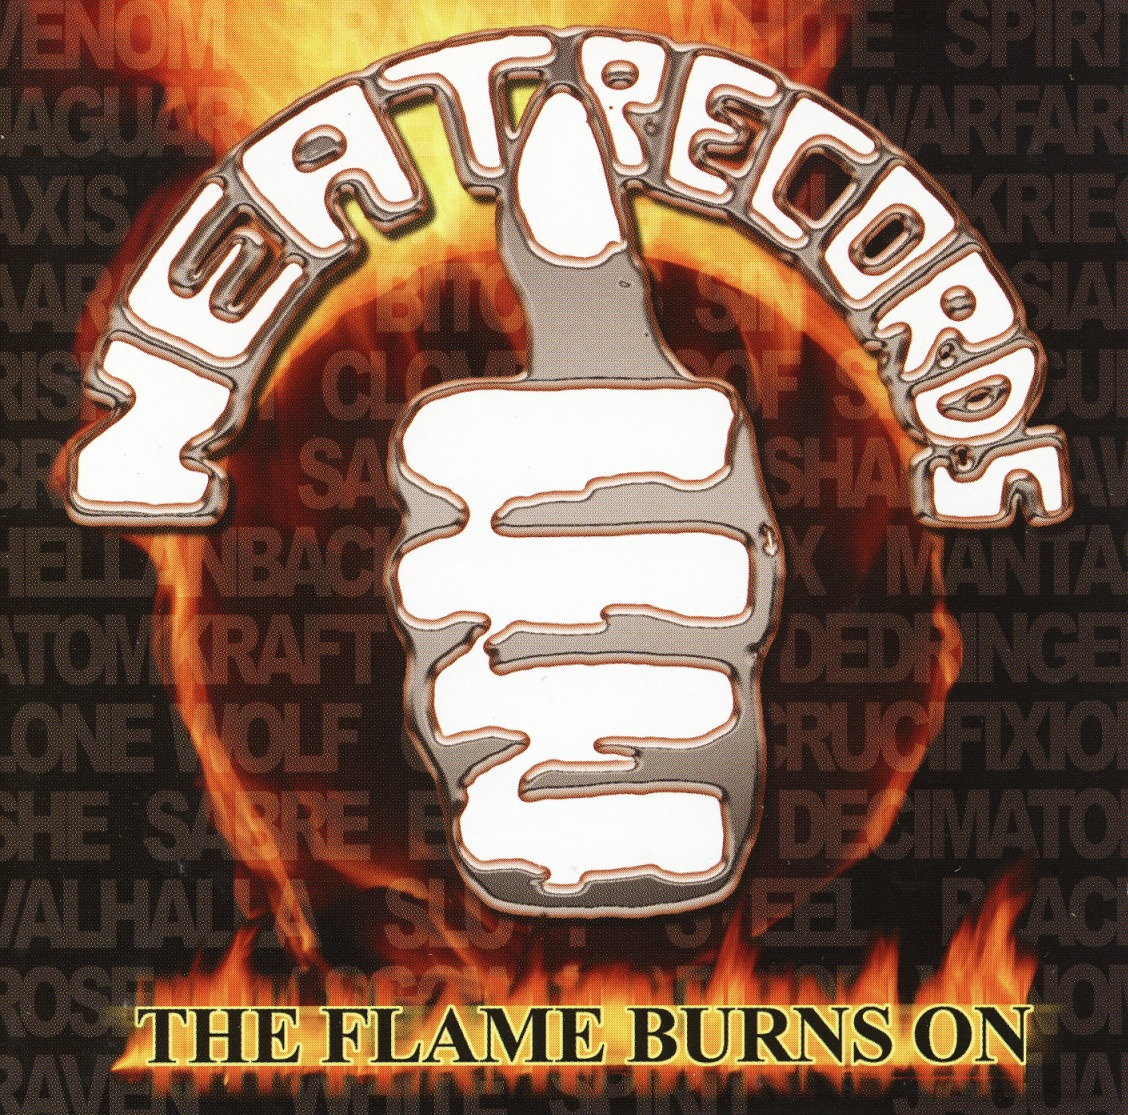 V.A. / The Flame Burns On - The Best Of Neat Records (2CD)